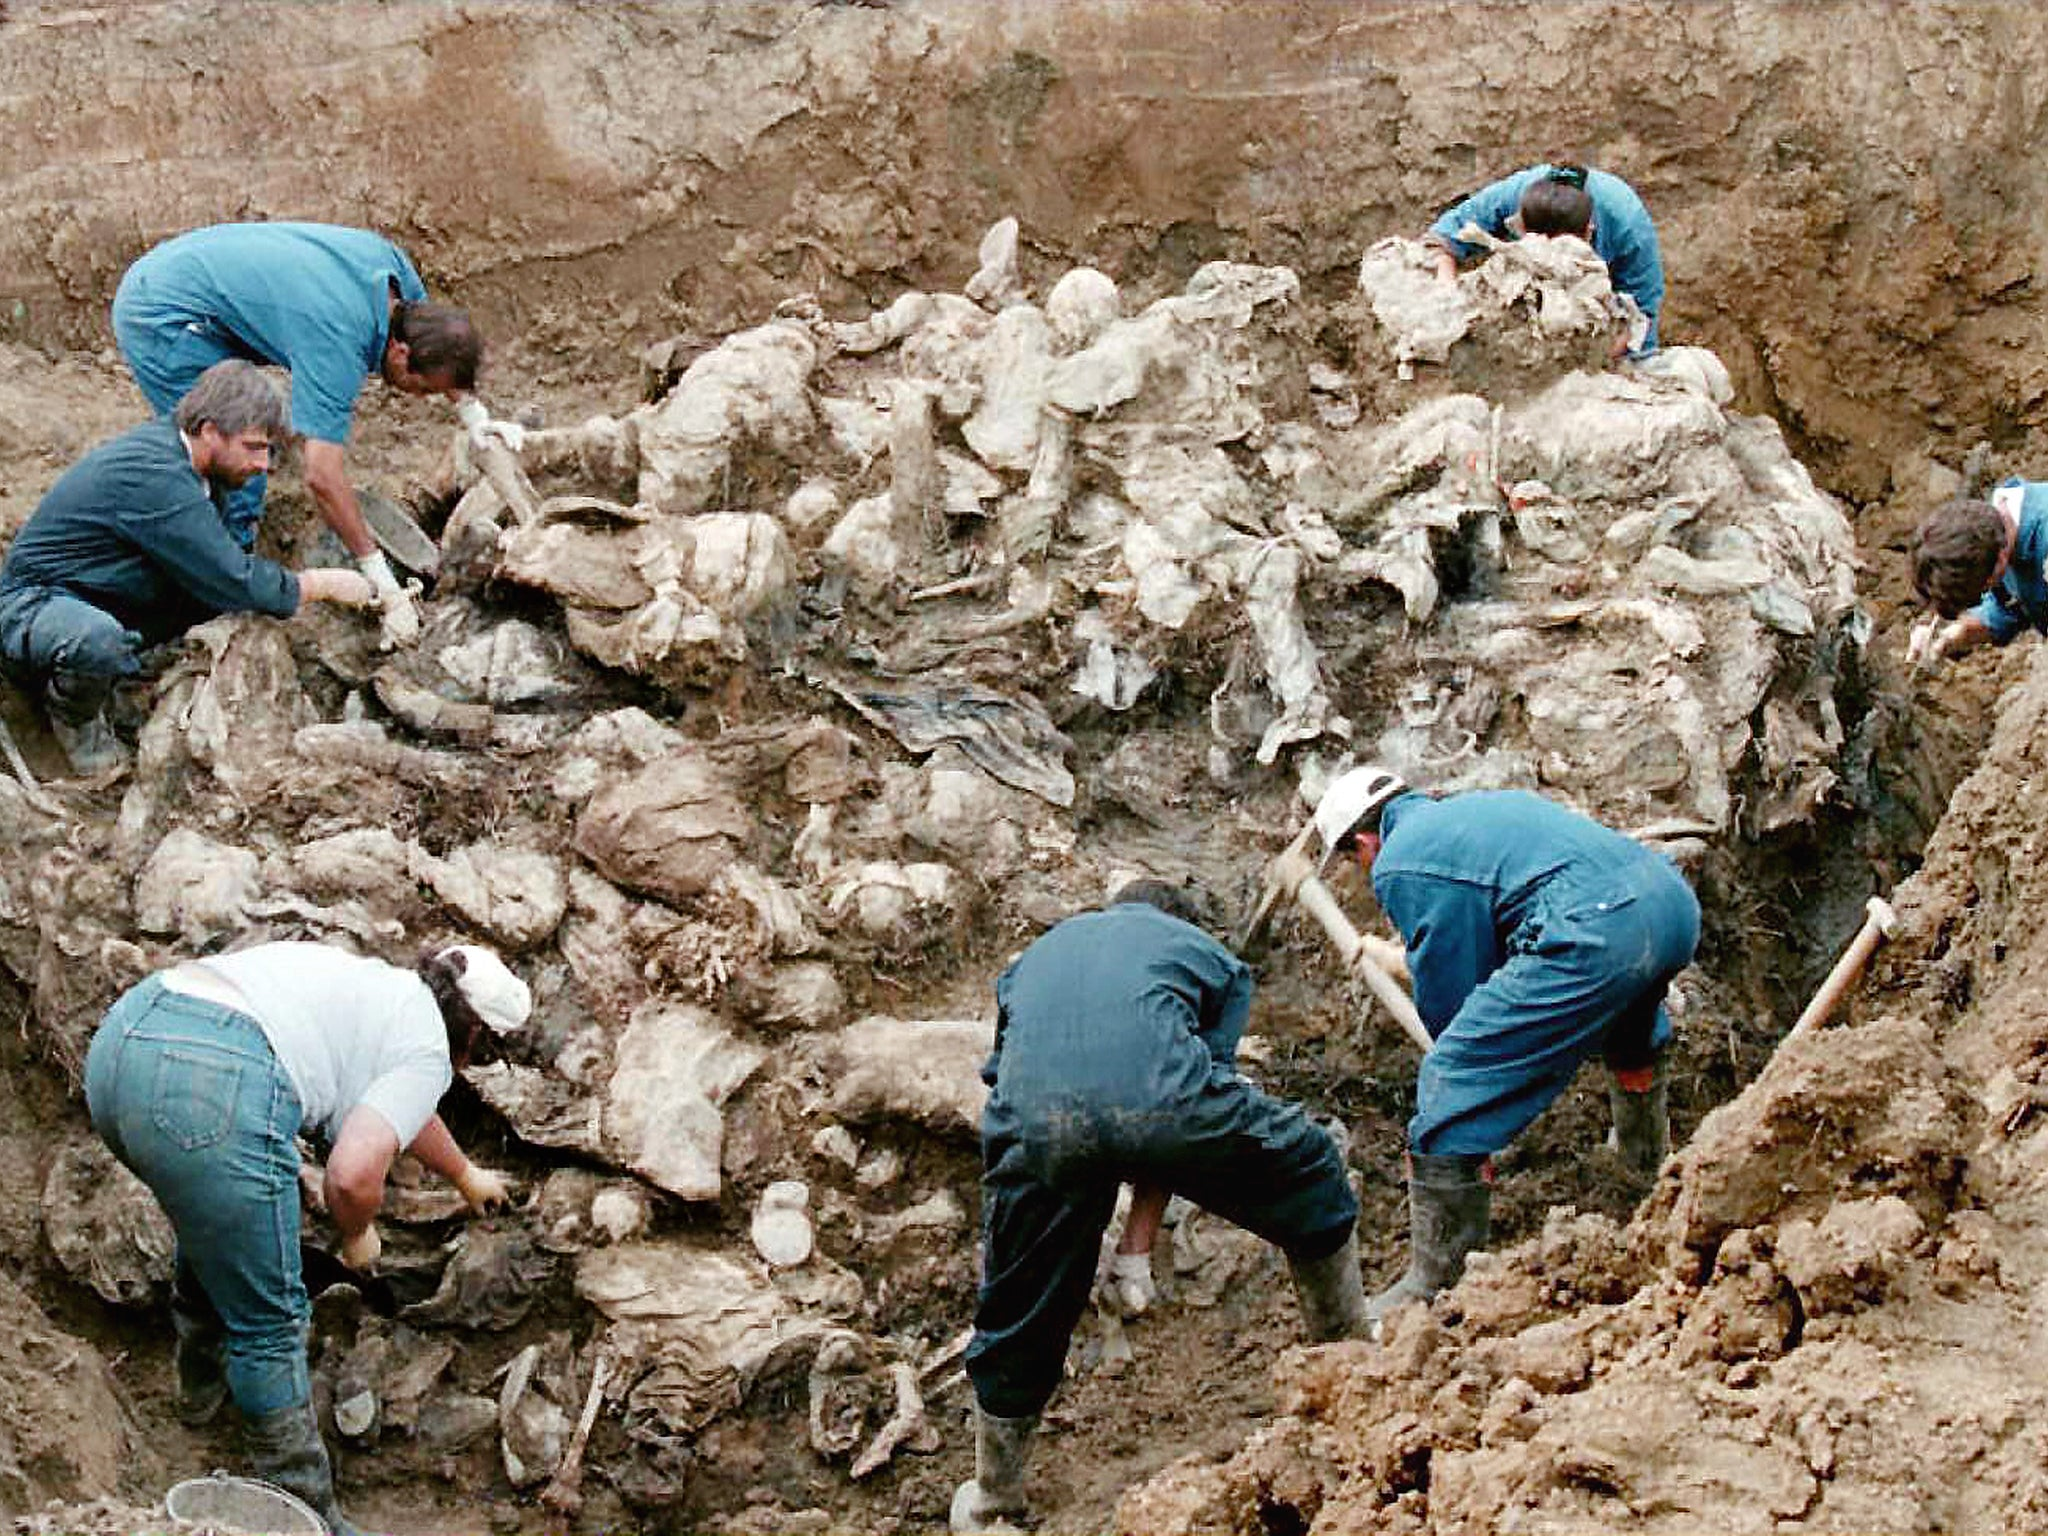 Opinion: 25 years after the Srebrenica massacre, the merits of foreign intervention are clearer than ever